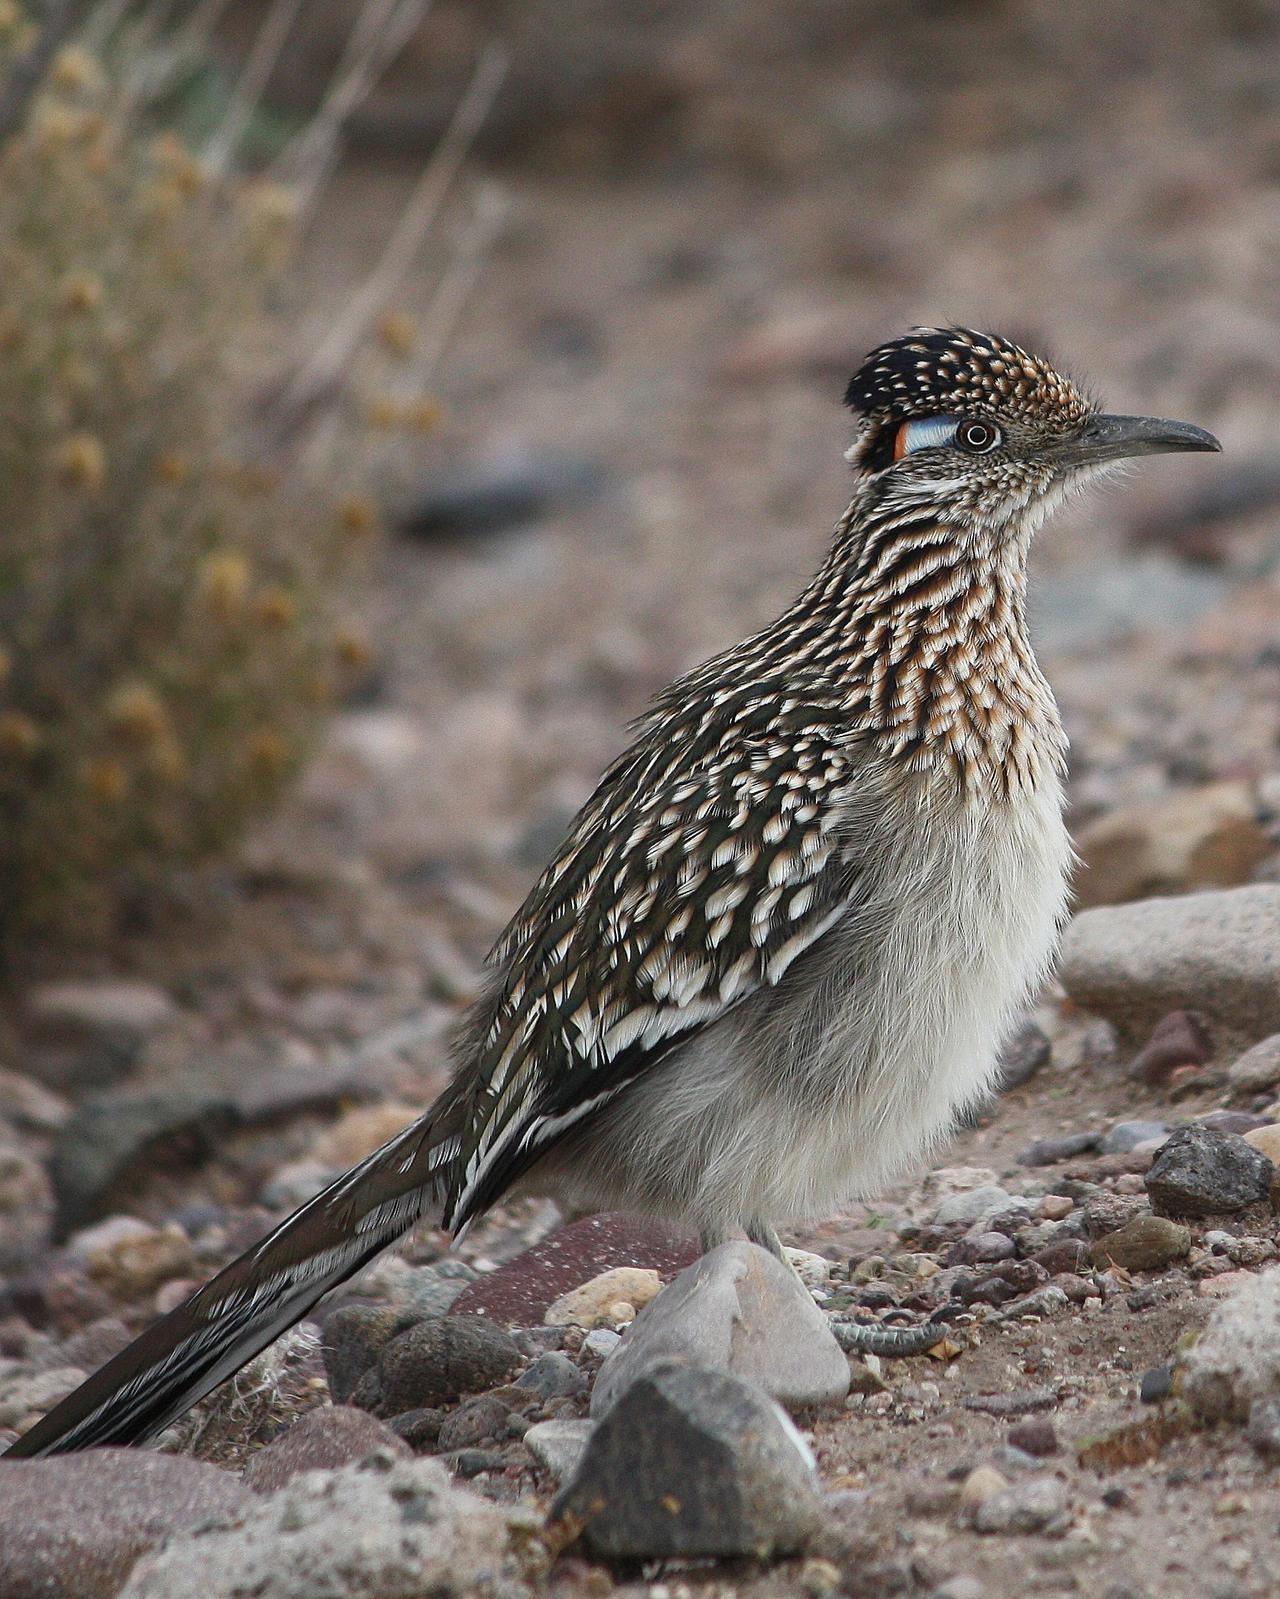 Greater Roadrunner Photo by Andrew Core